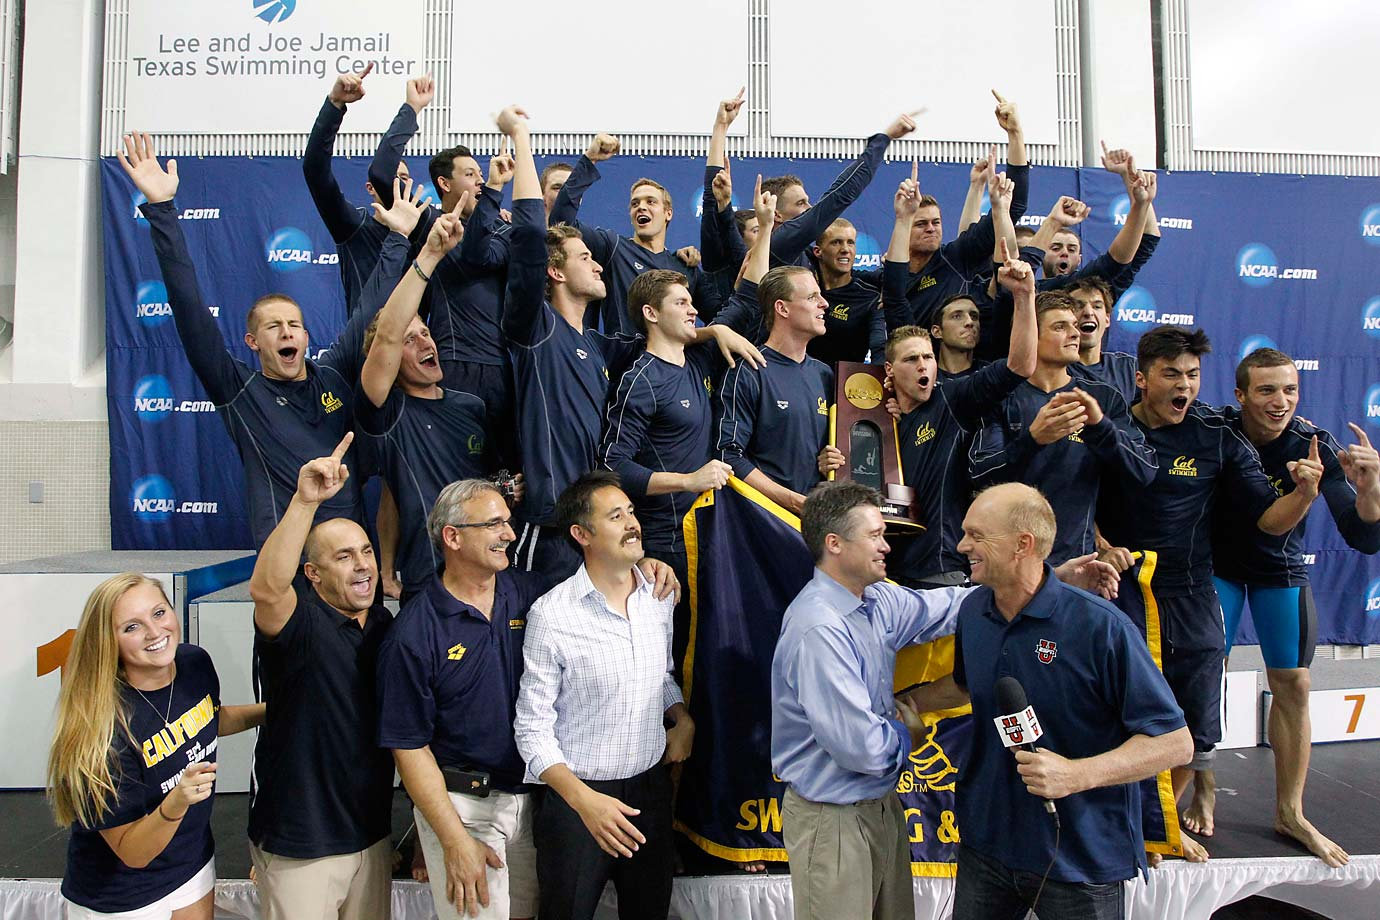 California's men's swimming and diving team poses for celebratory pictures after winning the sport's national title.